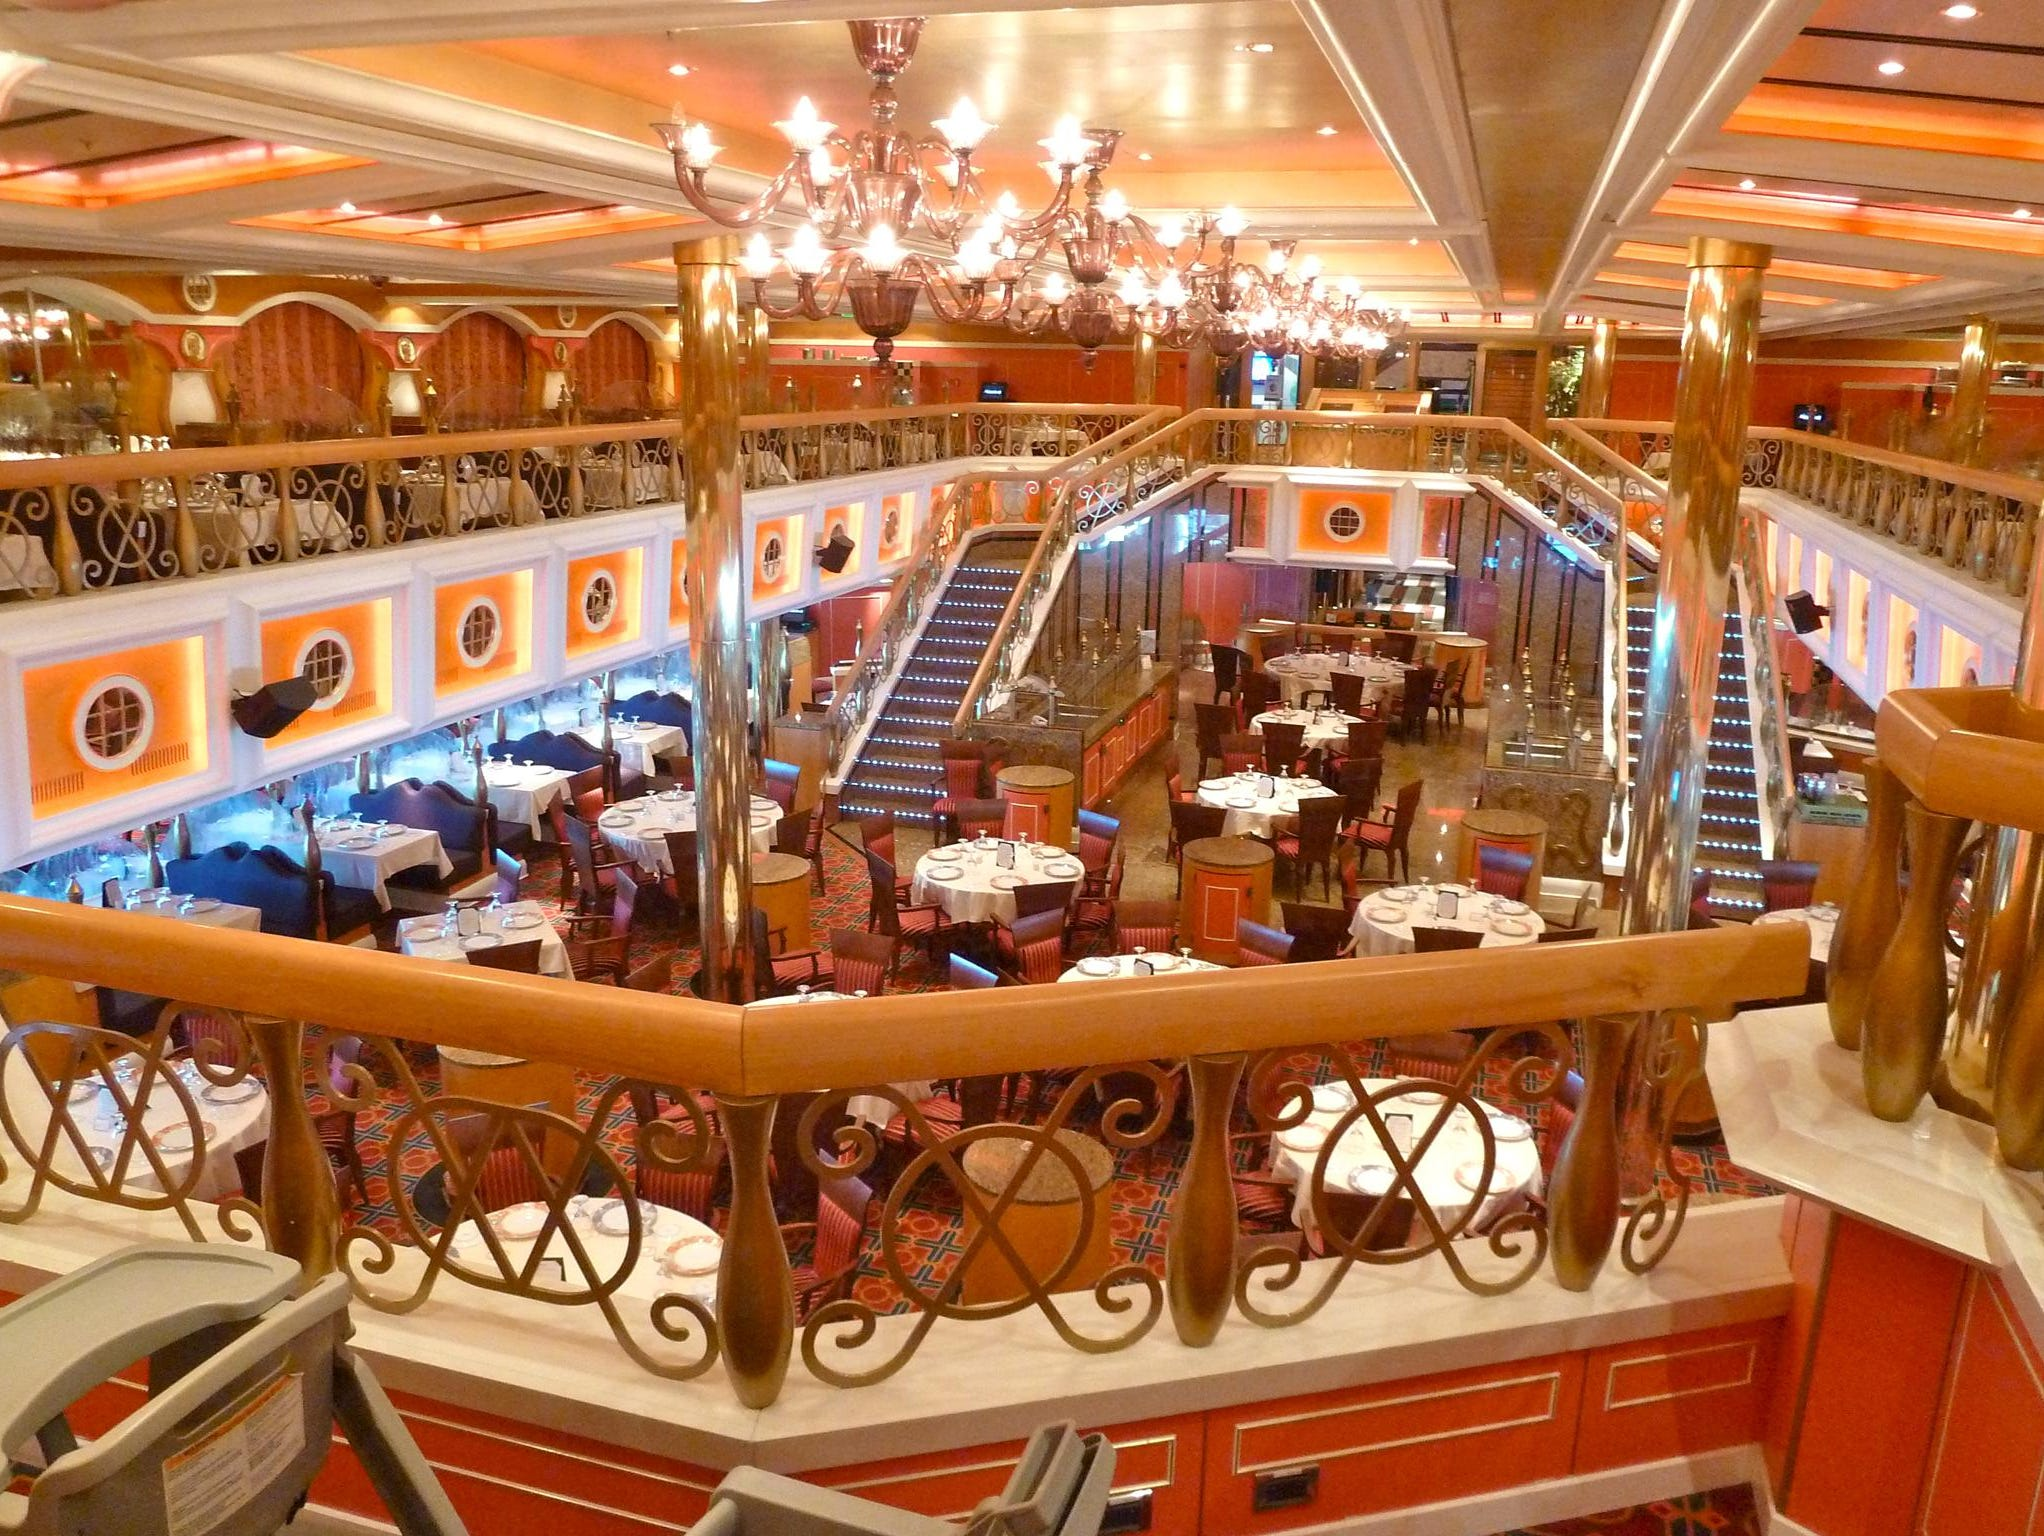 The 744-seat, colonial-themed Lincoln Dining Room is the more forward and slightly smaller of the two traditional dining rooms on the Carnival Valor.